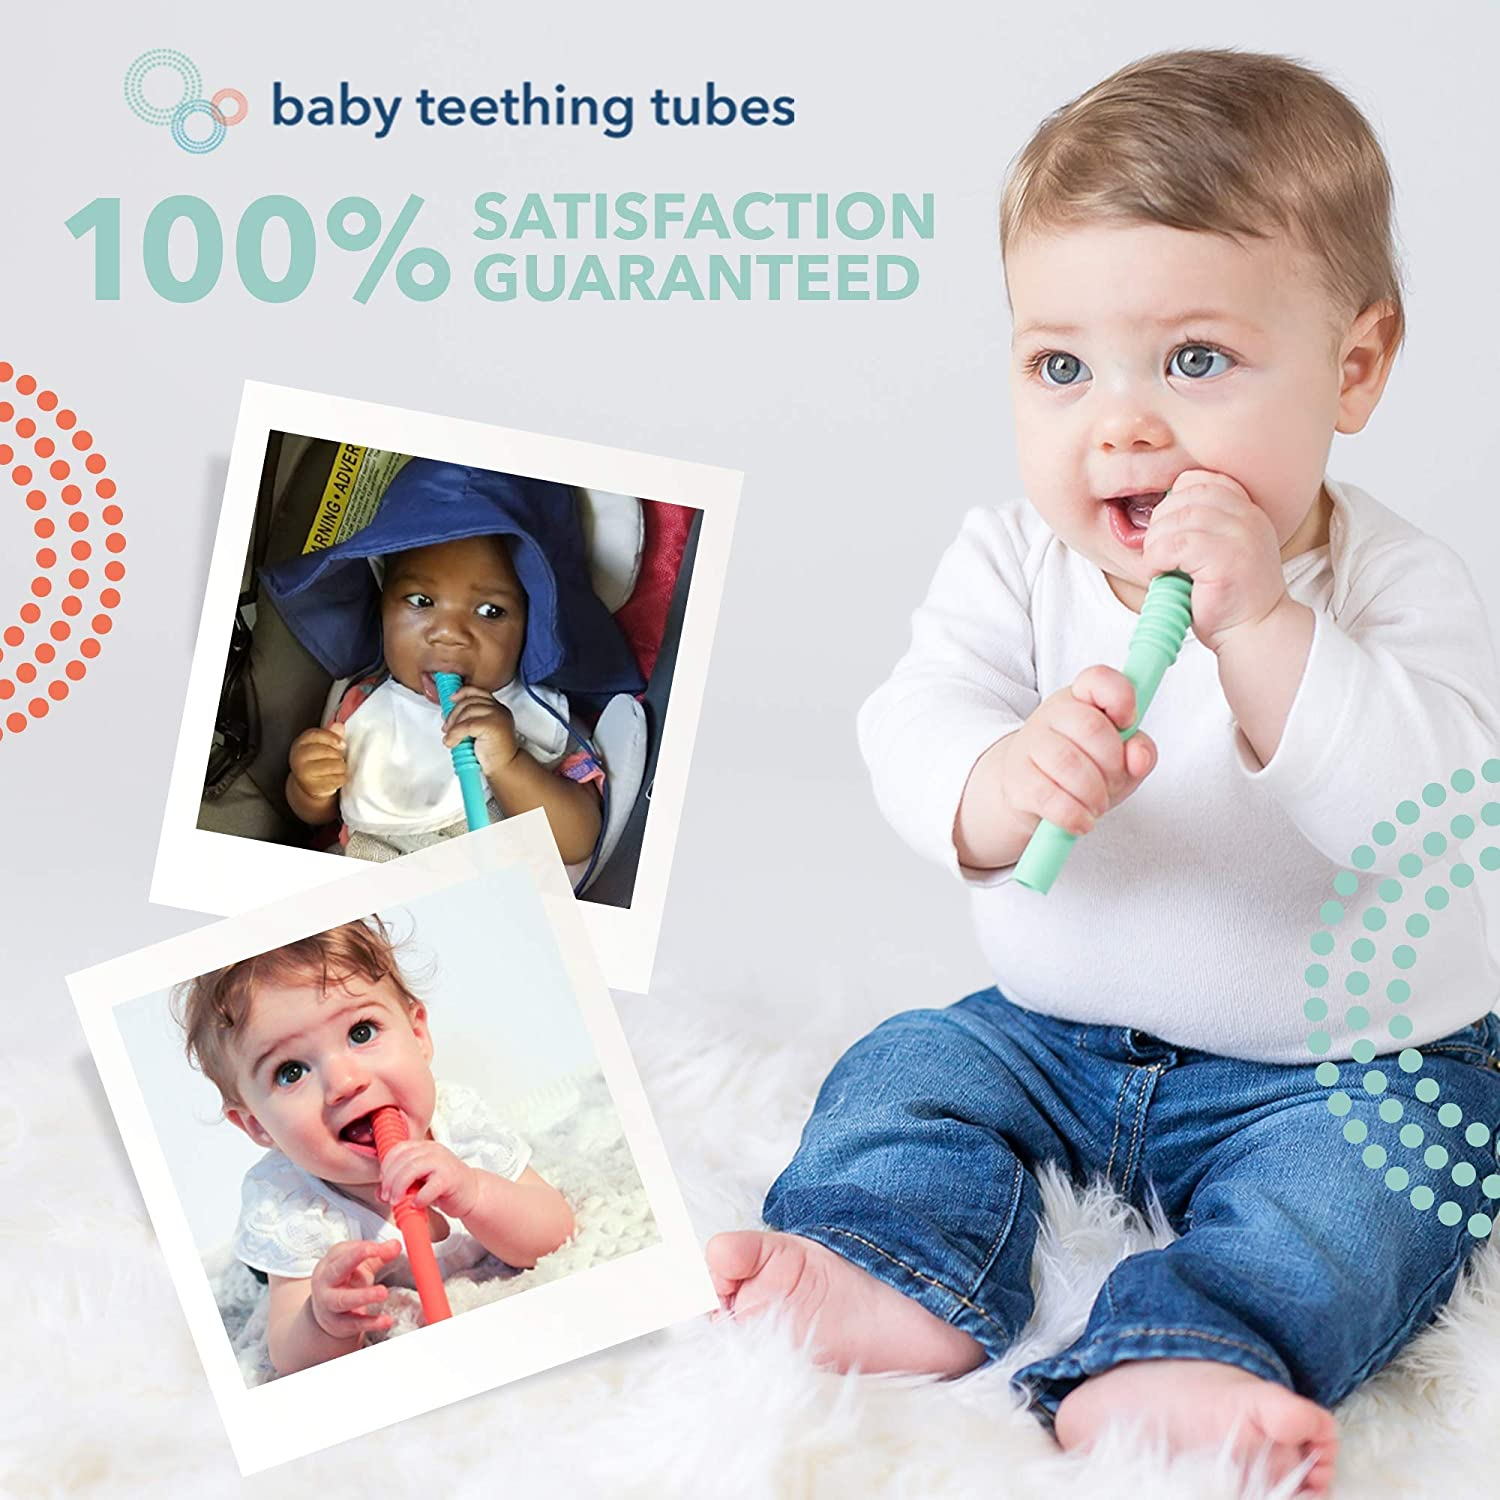 7 inches long Made in the USA Durable Easy to Clean Baby Teething Tubes: Soft Silicone Teething Baby Toy for Babies 0+ Months Safe Silicone Helps Soothe Teething Irritation Hypoallergenic